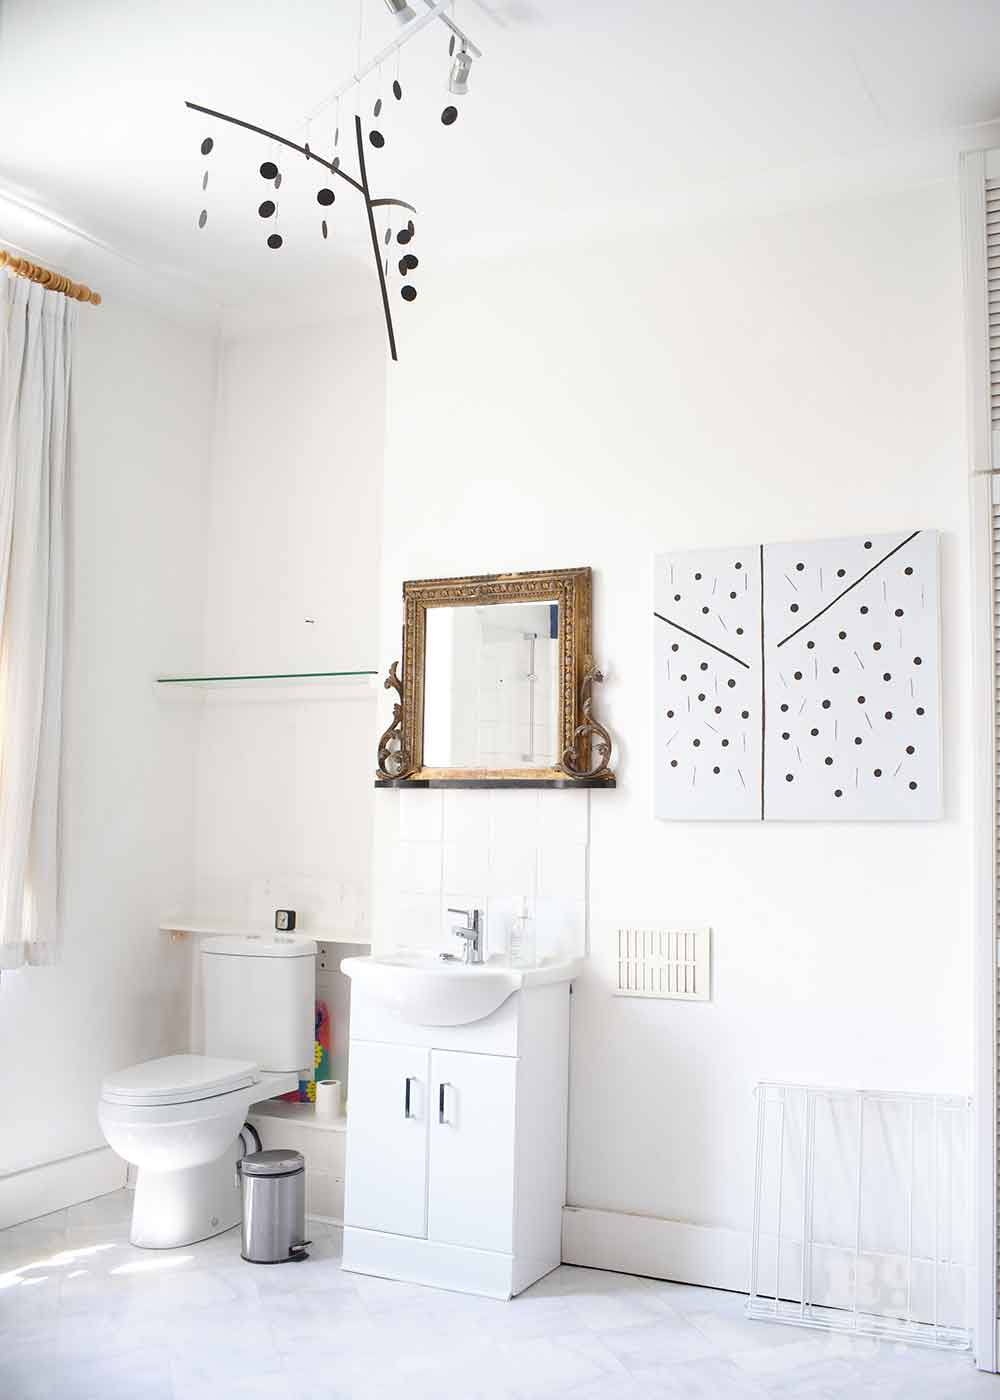 Art hanging in a white bathroom, the home of Bow artist Alice Sielle.